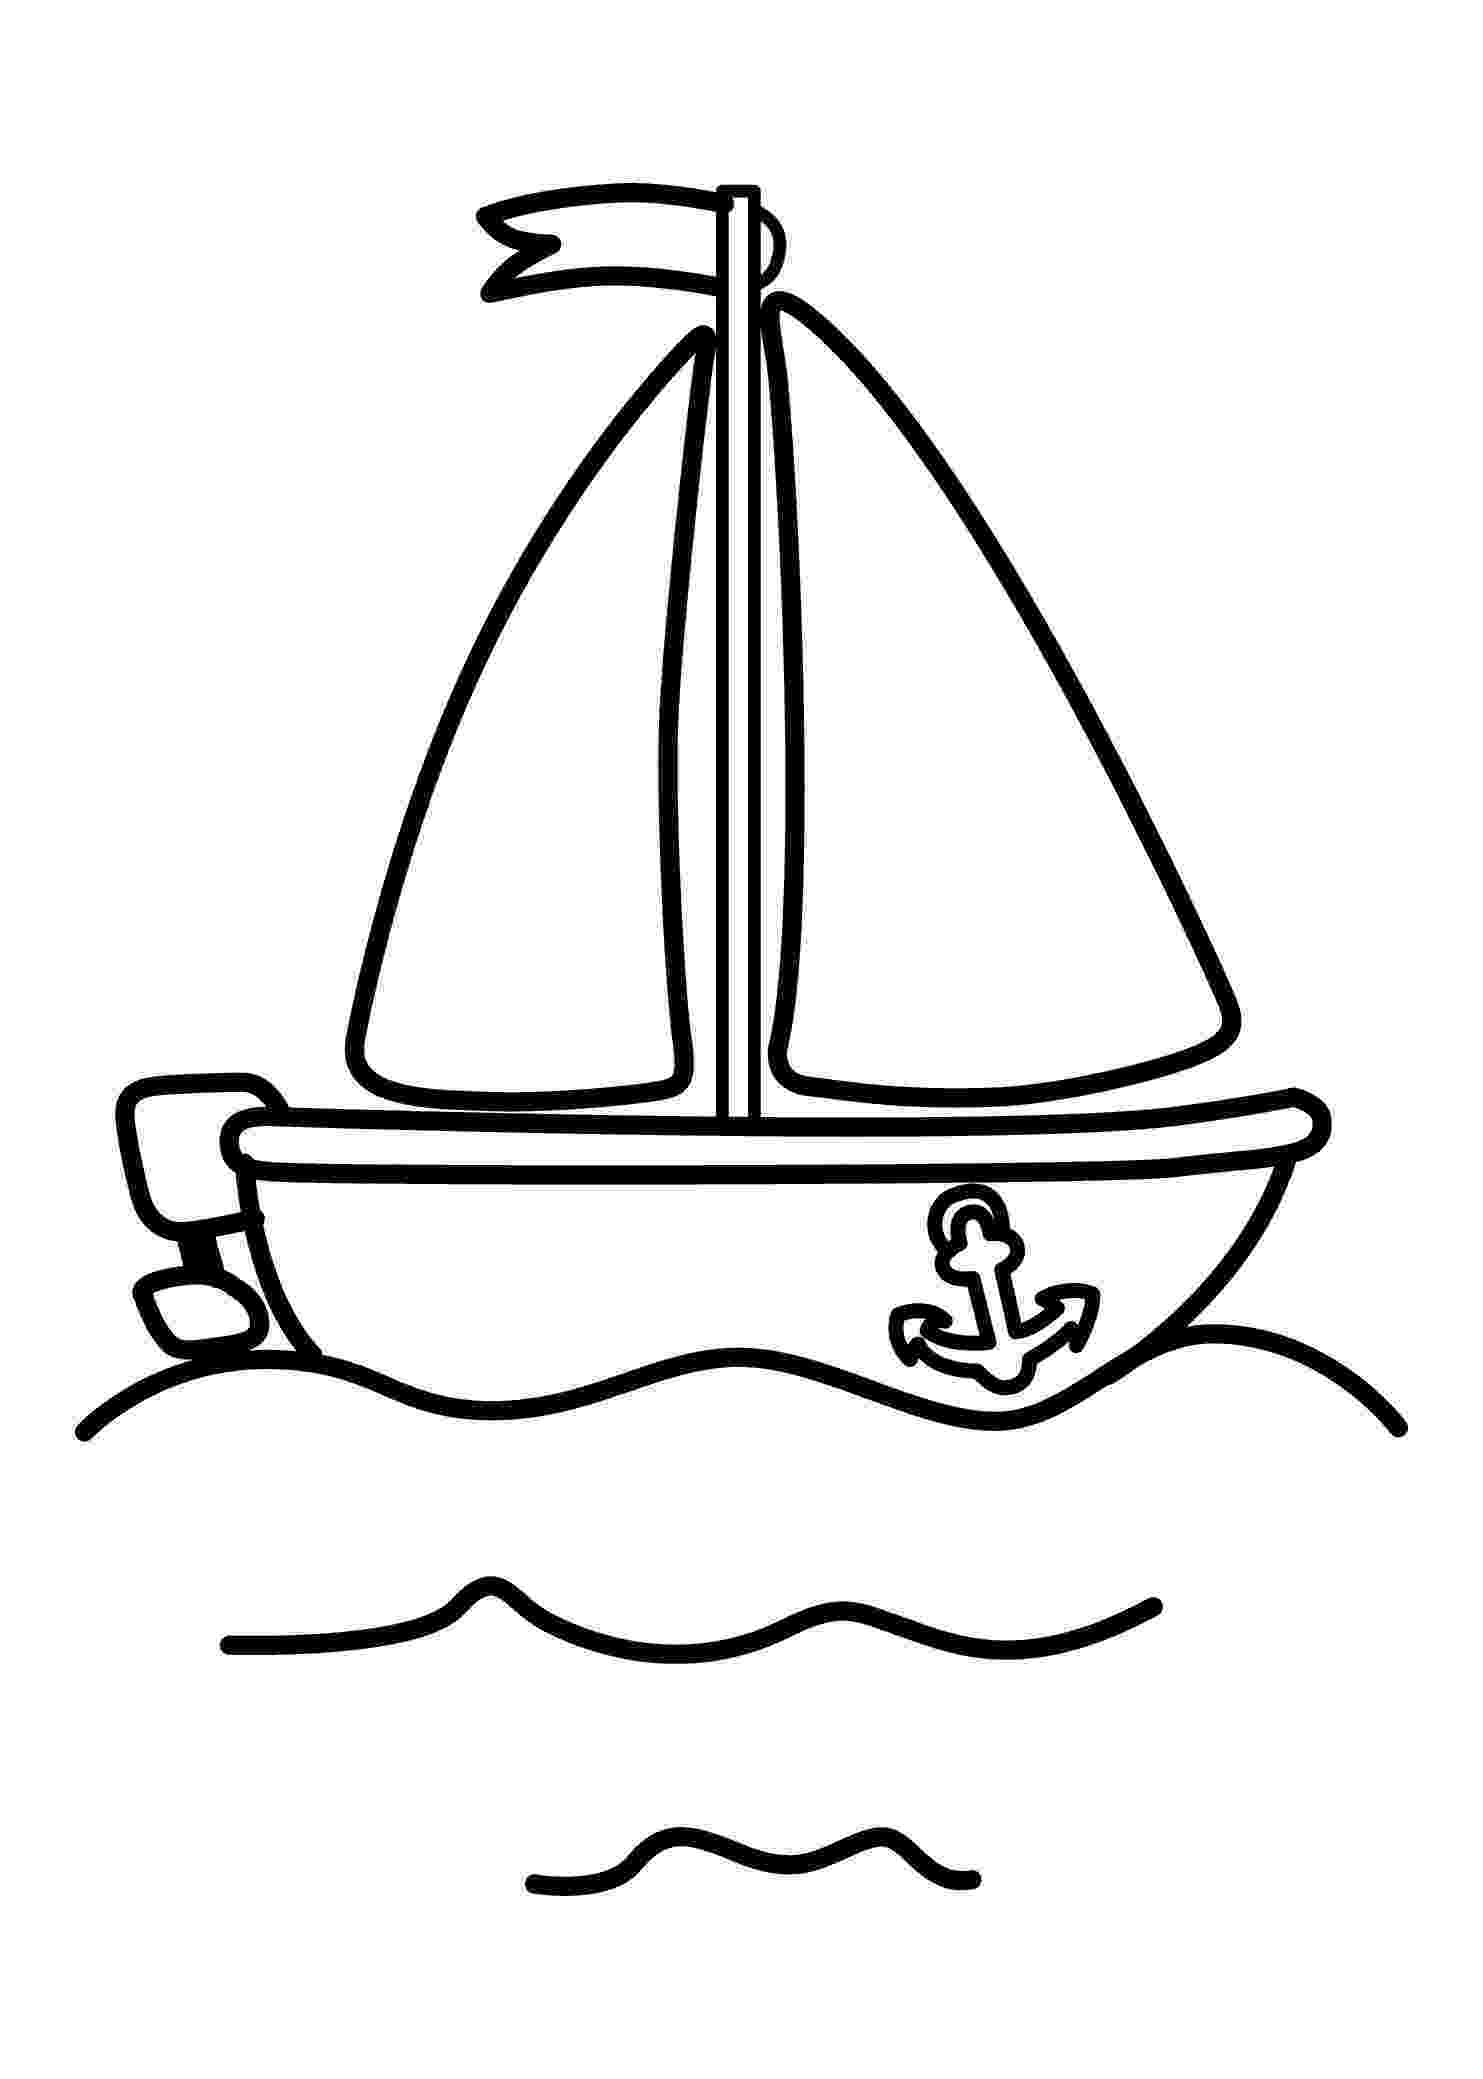 boat coloring page pin by shreya thakur on free coloring pages coloring page boat coloring